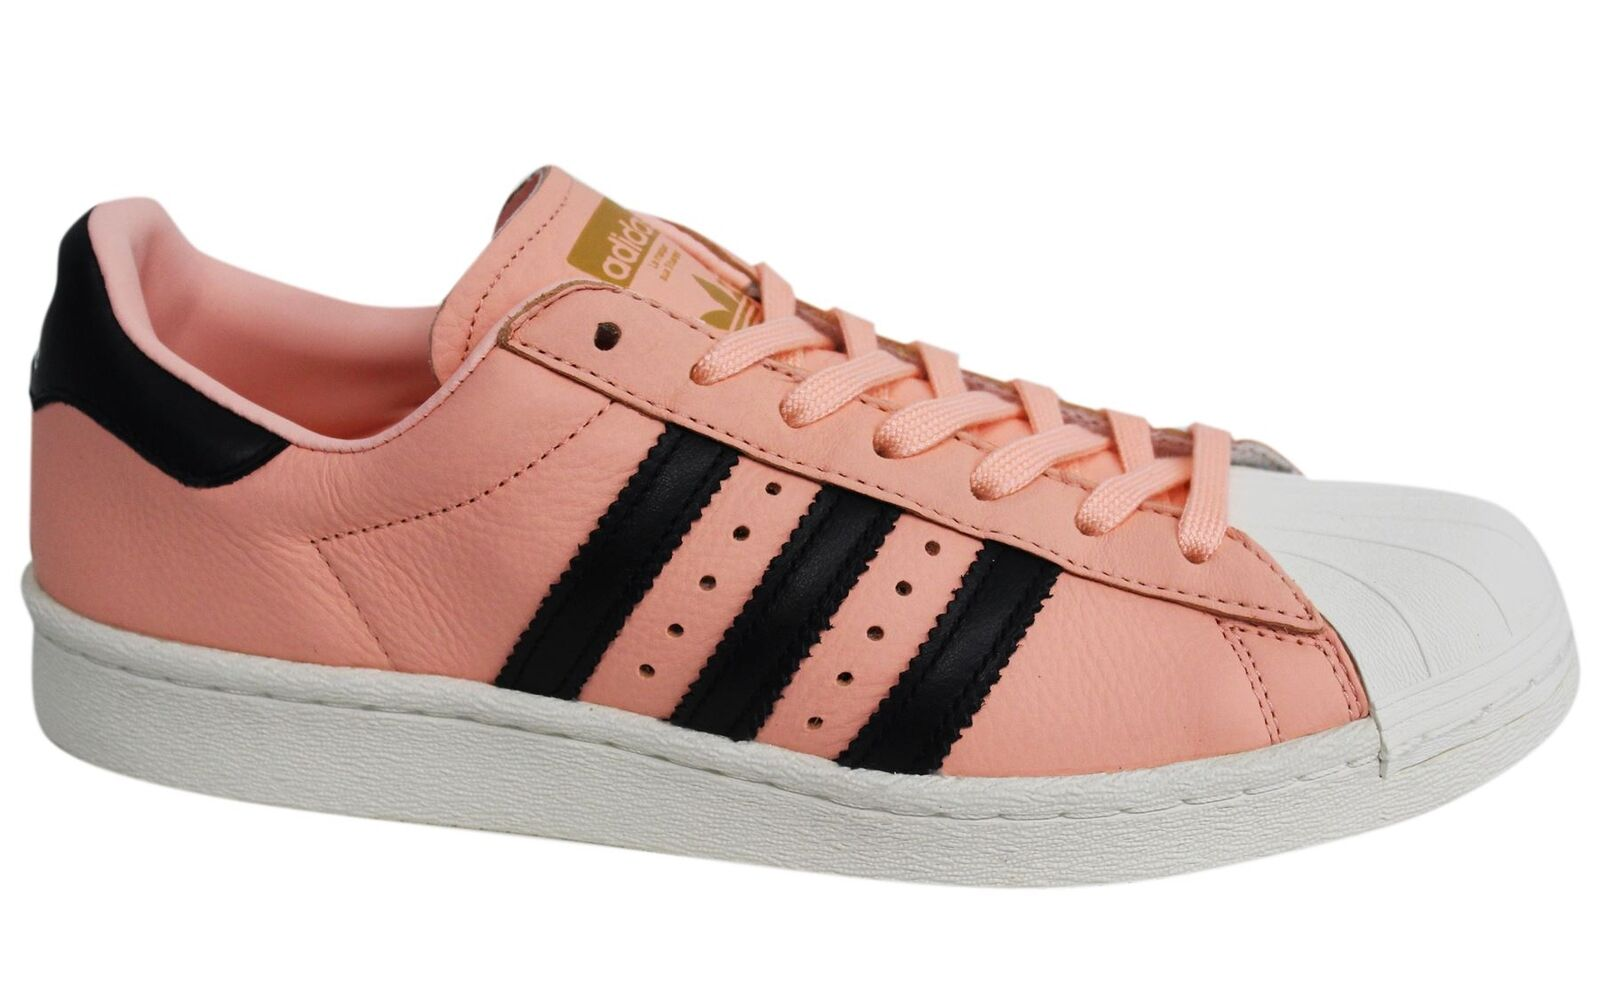 ADIDAS ORIGINALS GAZELLE rouge Taille 11 BRAND 74.95 NEW IN BOX  74.95 BRAND ef7db1